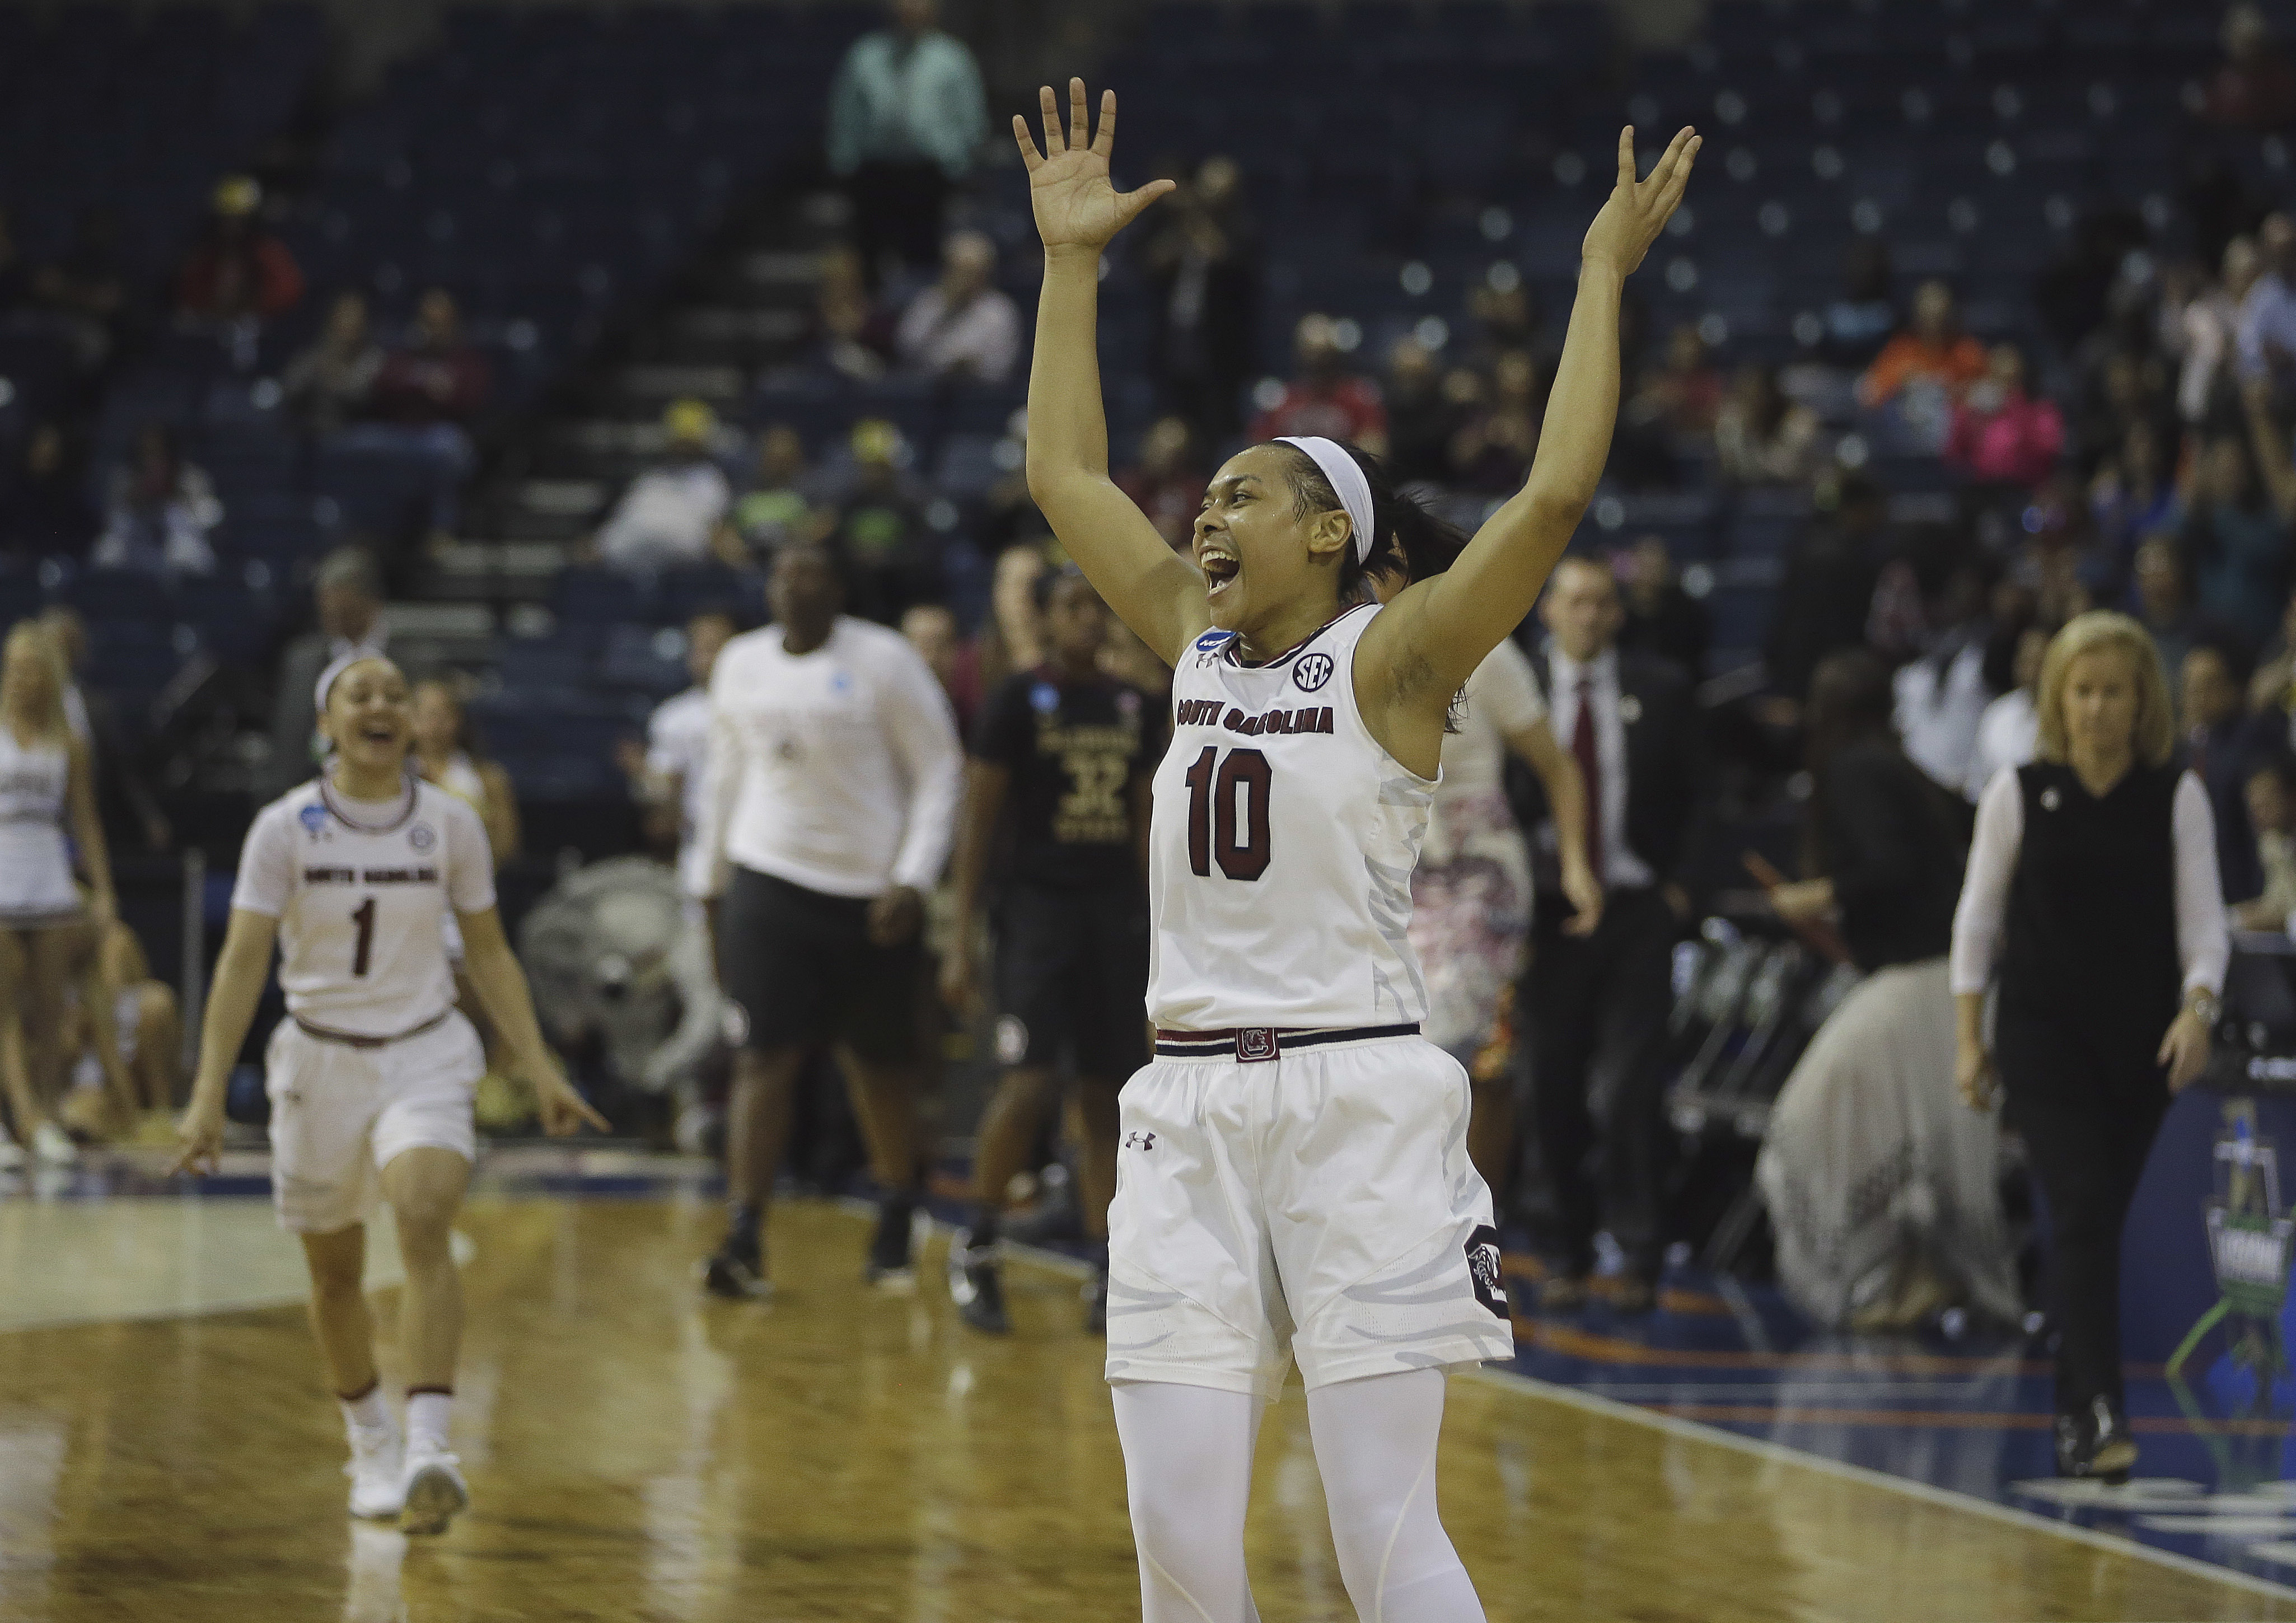 South Carolina guard Allisha Gray celebrates as the final buzzer sounds and the Gamecocks beat Florida State, 71-64, in a regional final game of the women's NCAA college basketball tournament, Monday, March 27, 2017, in Stockton, Calif. (AP Photo/Rich Ped